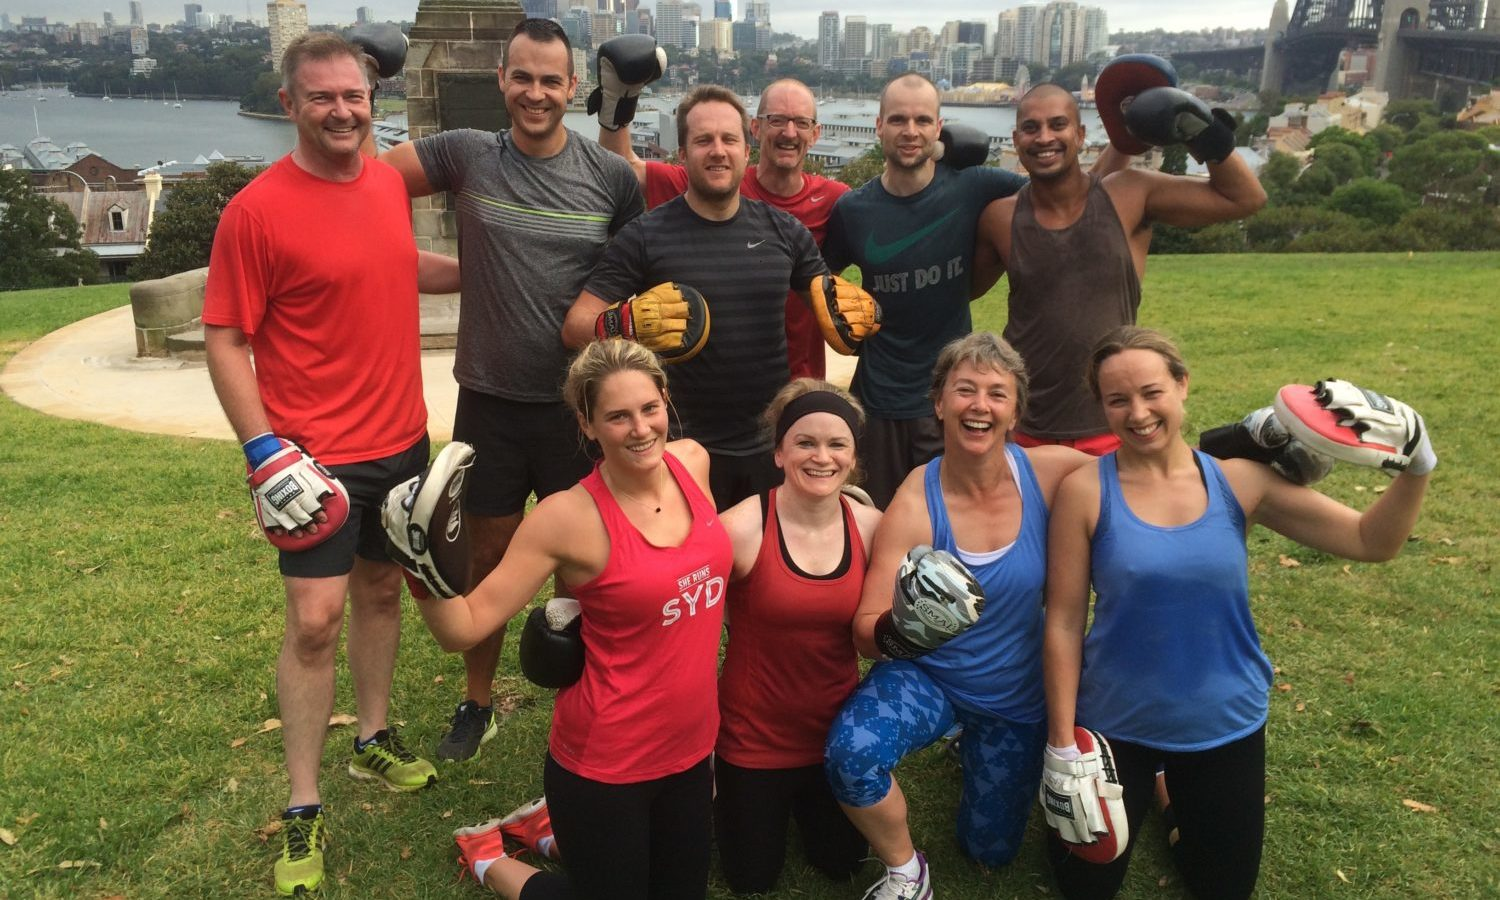 Fitness Boot Camp Sydney